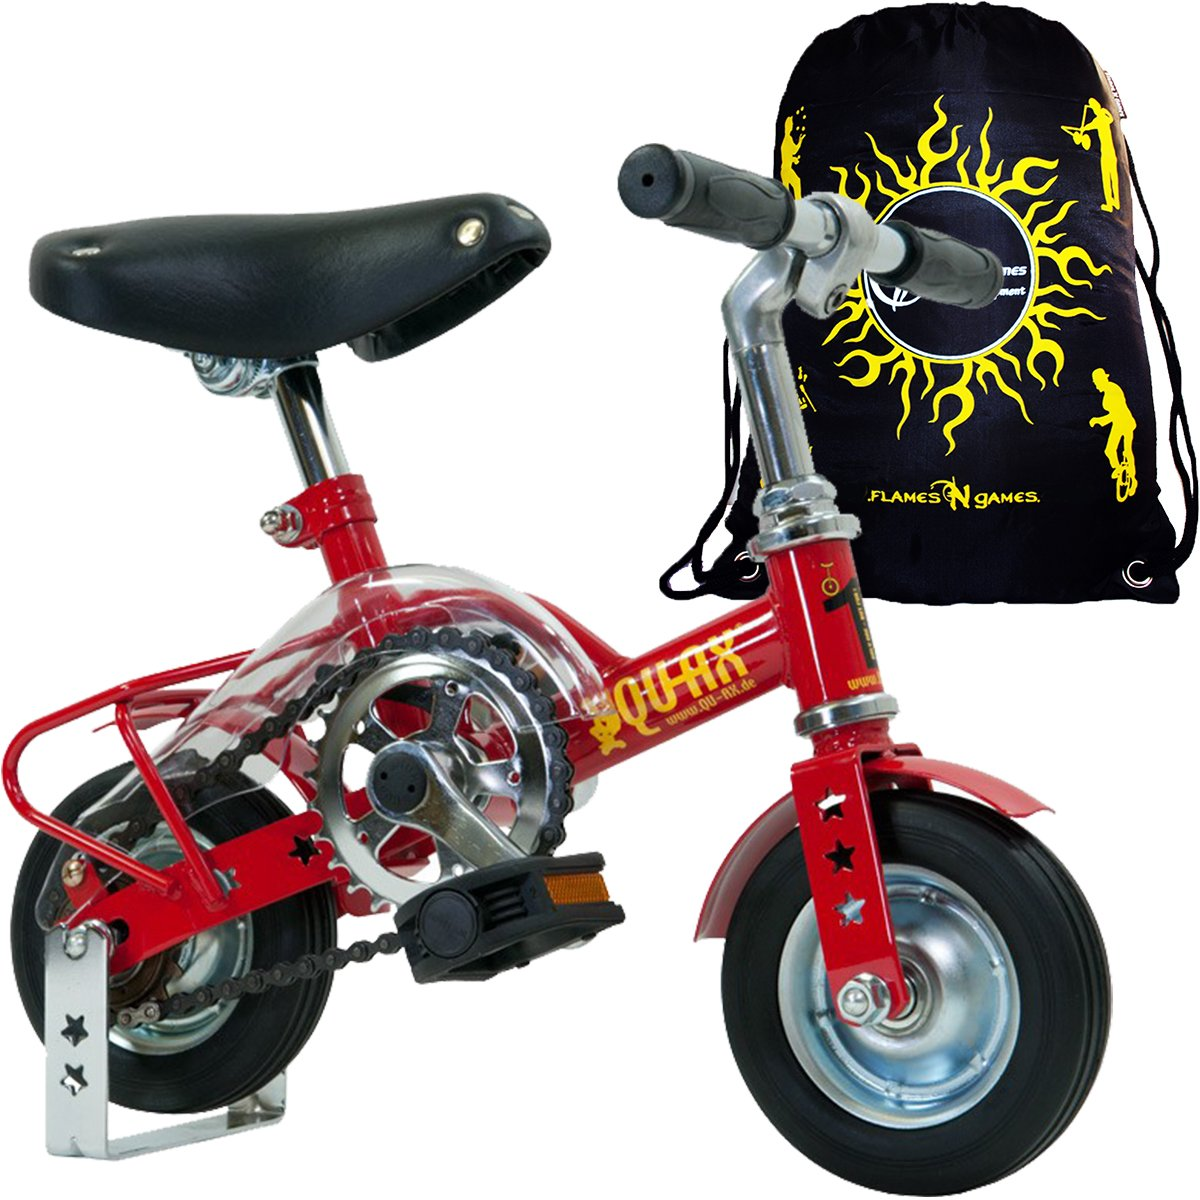 Qu-Ax 6'' Mini Bike In Red For Clowns and Professional Performers + Flames N' Games Travel Bag!